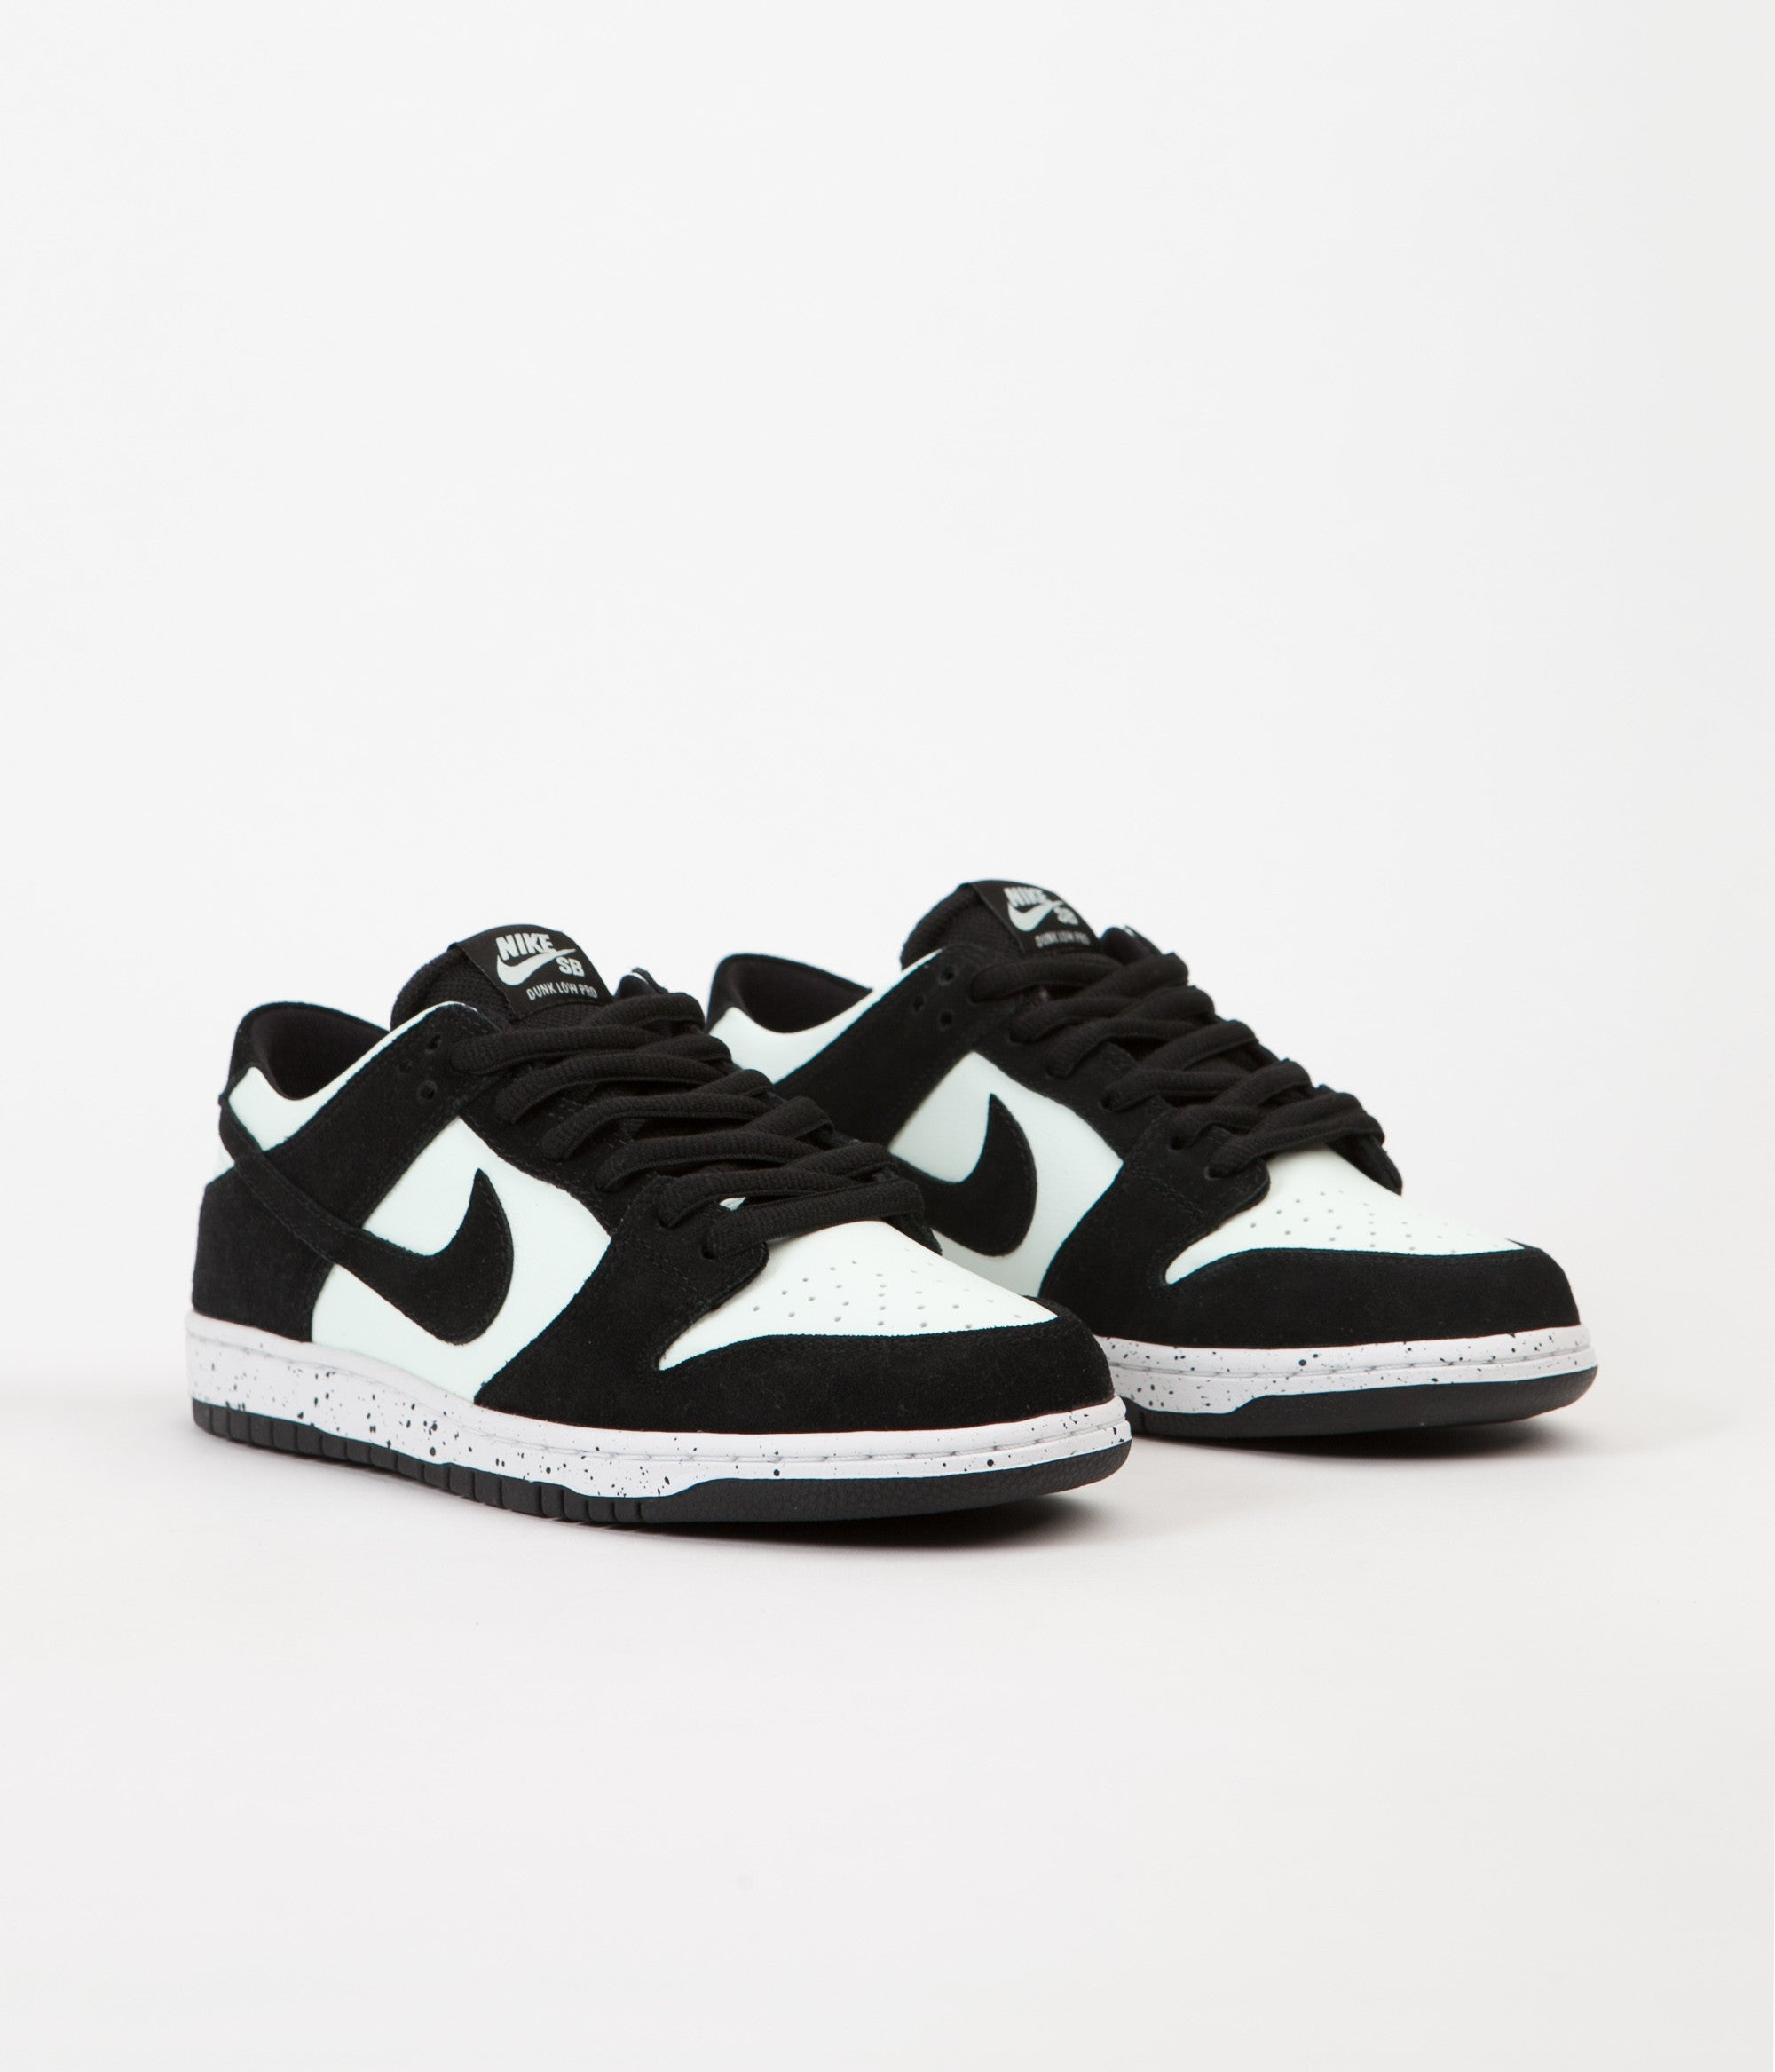 new styles f05c2 daad0 nike sb dunk low pro black and white